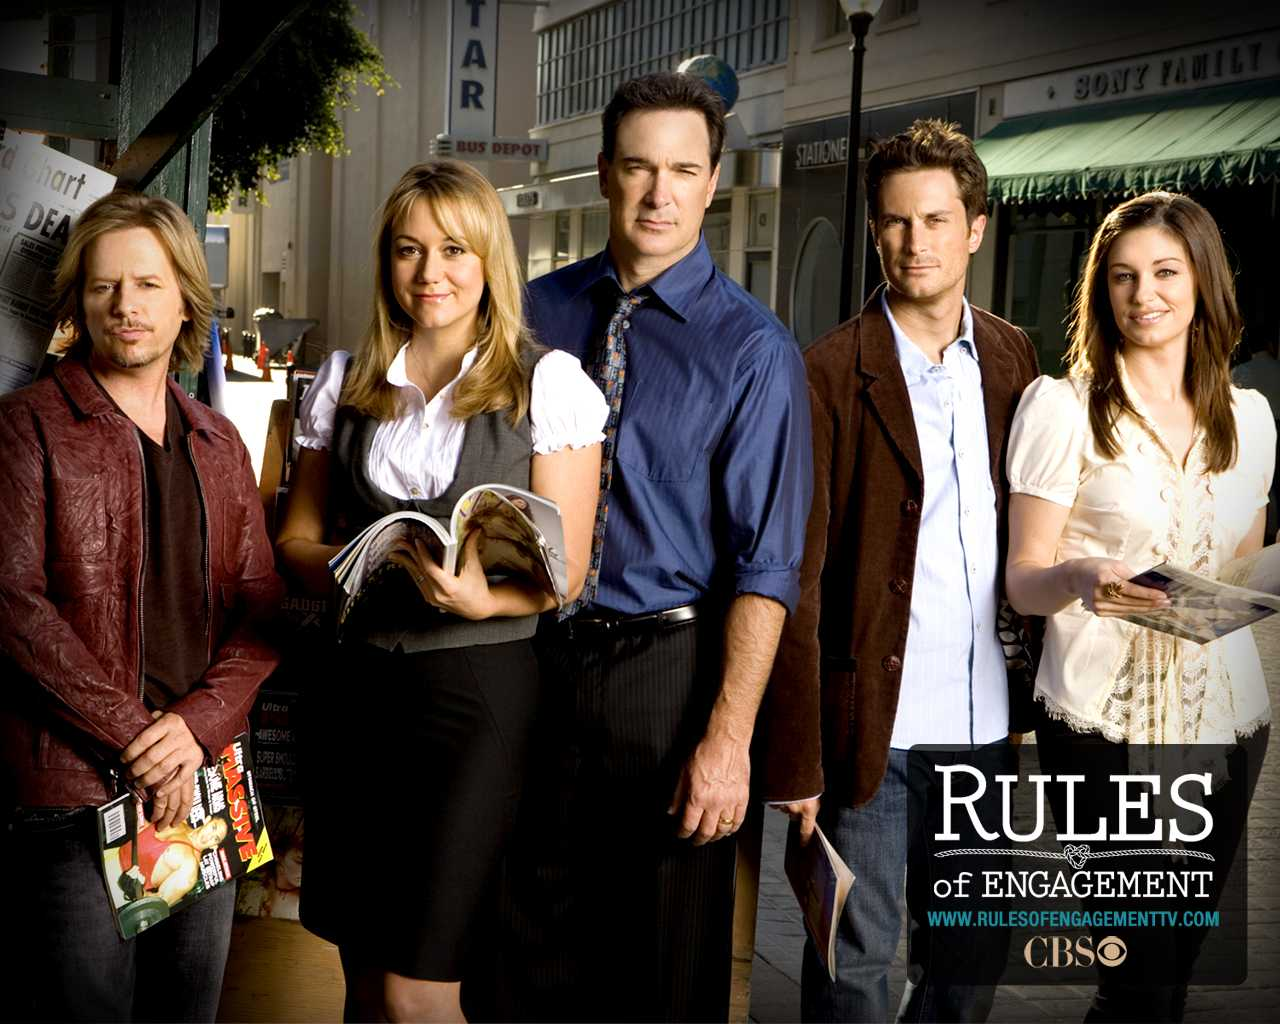 Jeff Rules Of Engagement Quotes: Music N' More: Rules Of Engagement